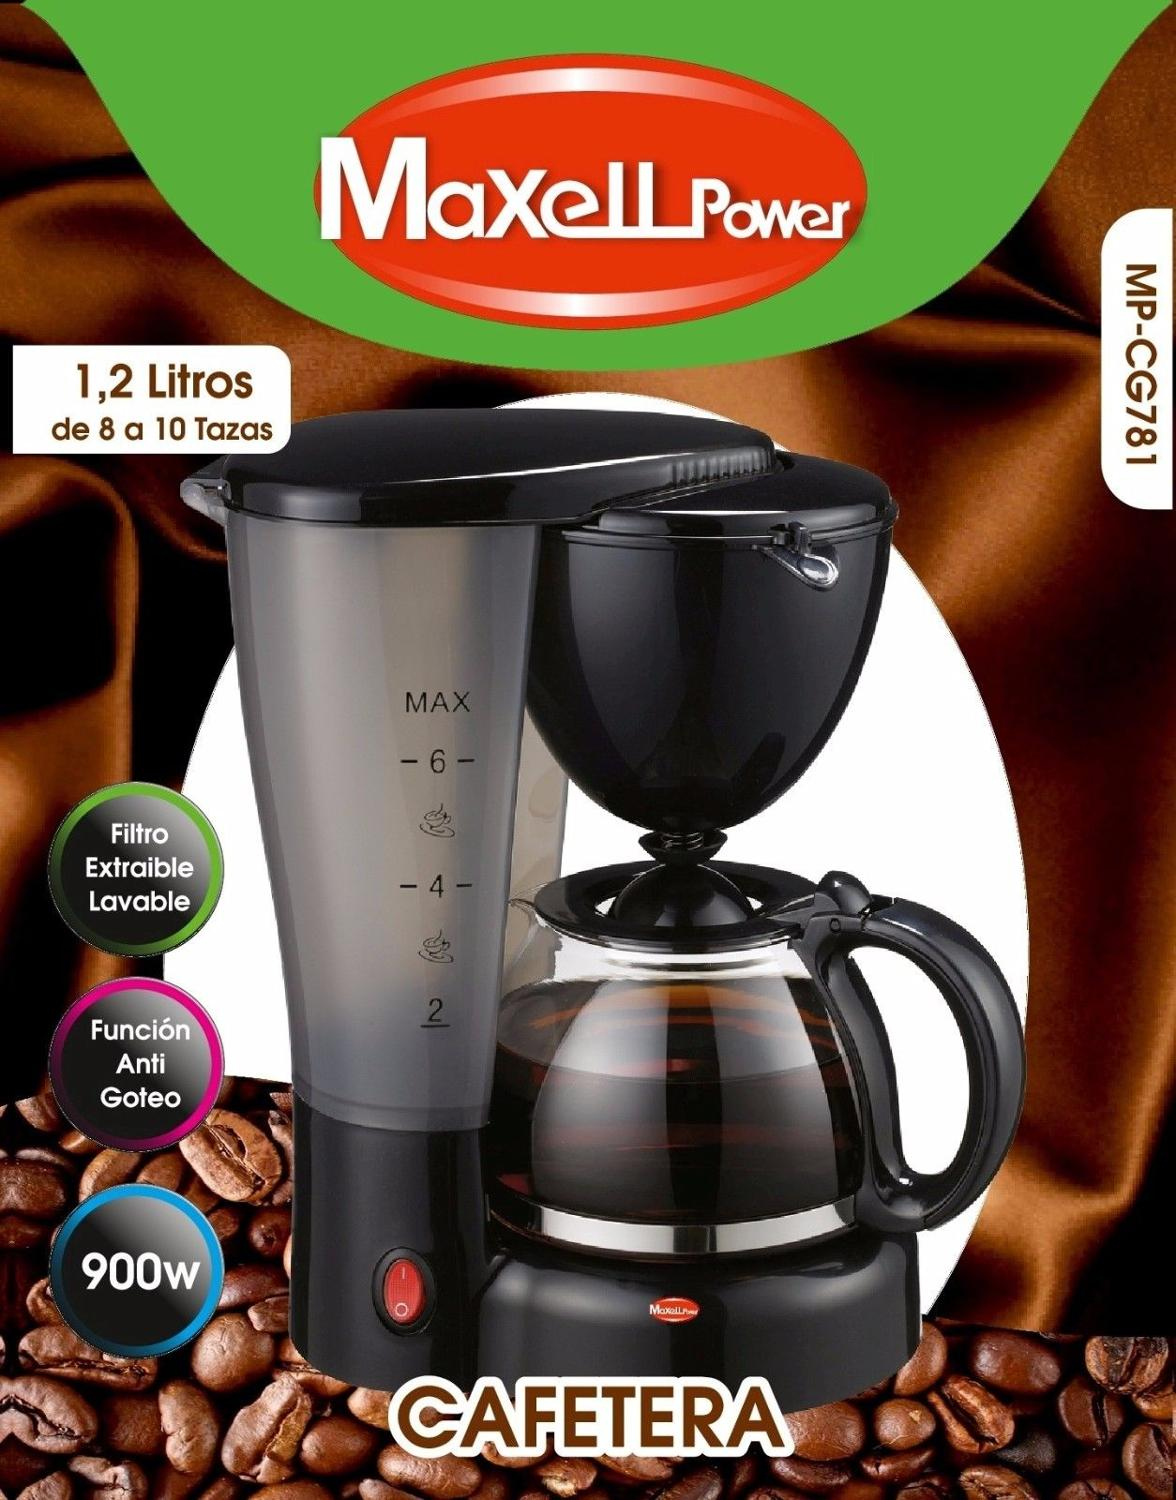 COFFEE DRIP ELECTRICA CAFE AMERICAN EXPRESS DRAW OUT 8 10 CUPS 1 2L MP CG781 Coffee Makers     - title=